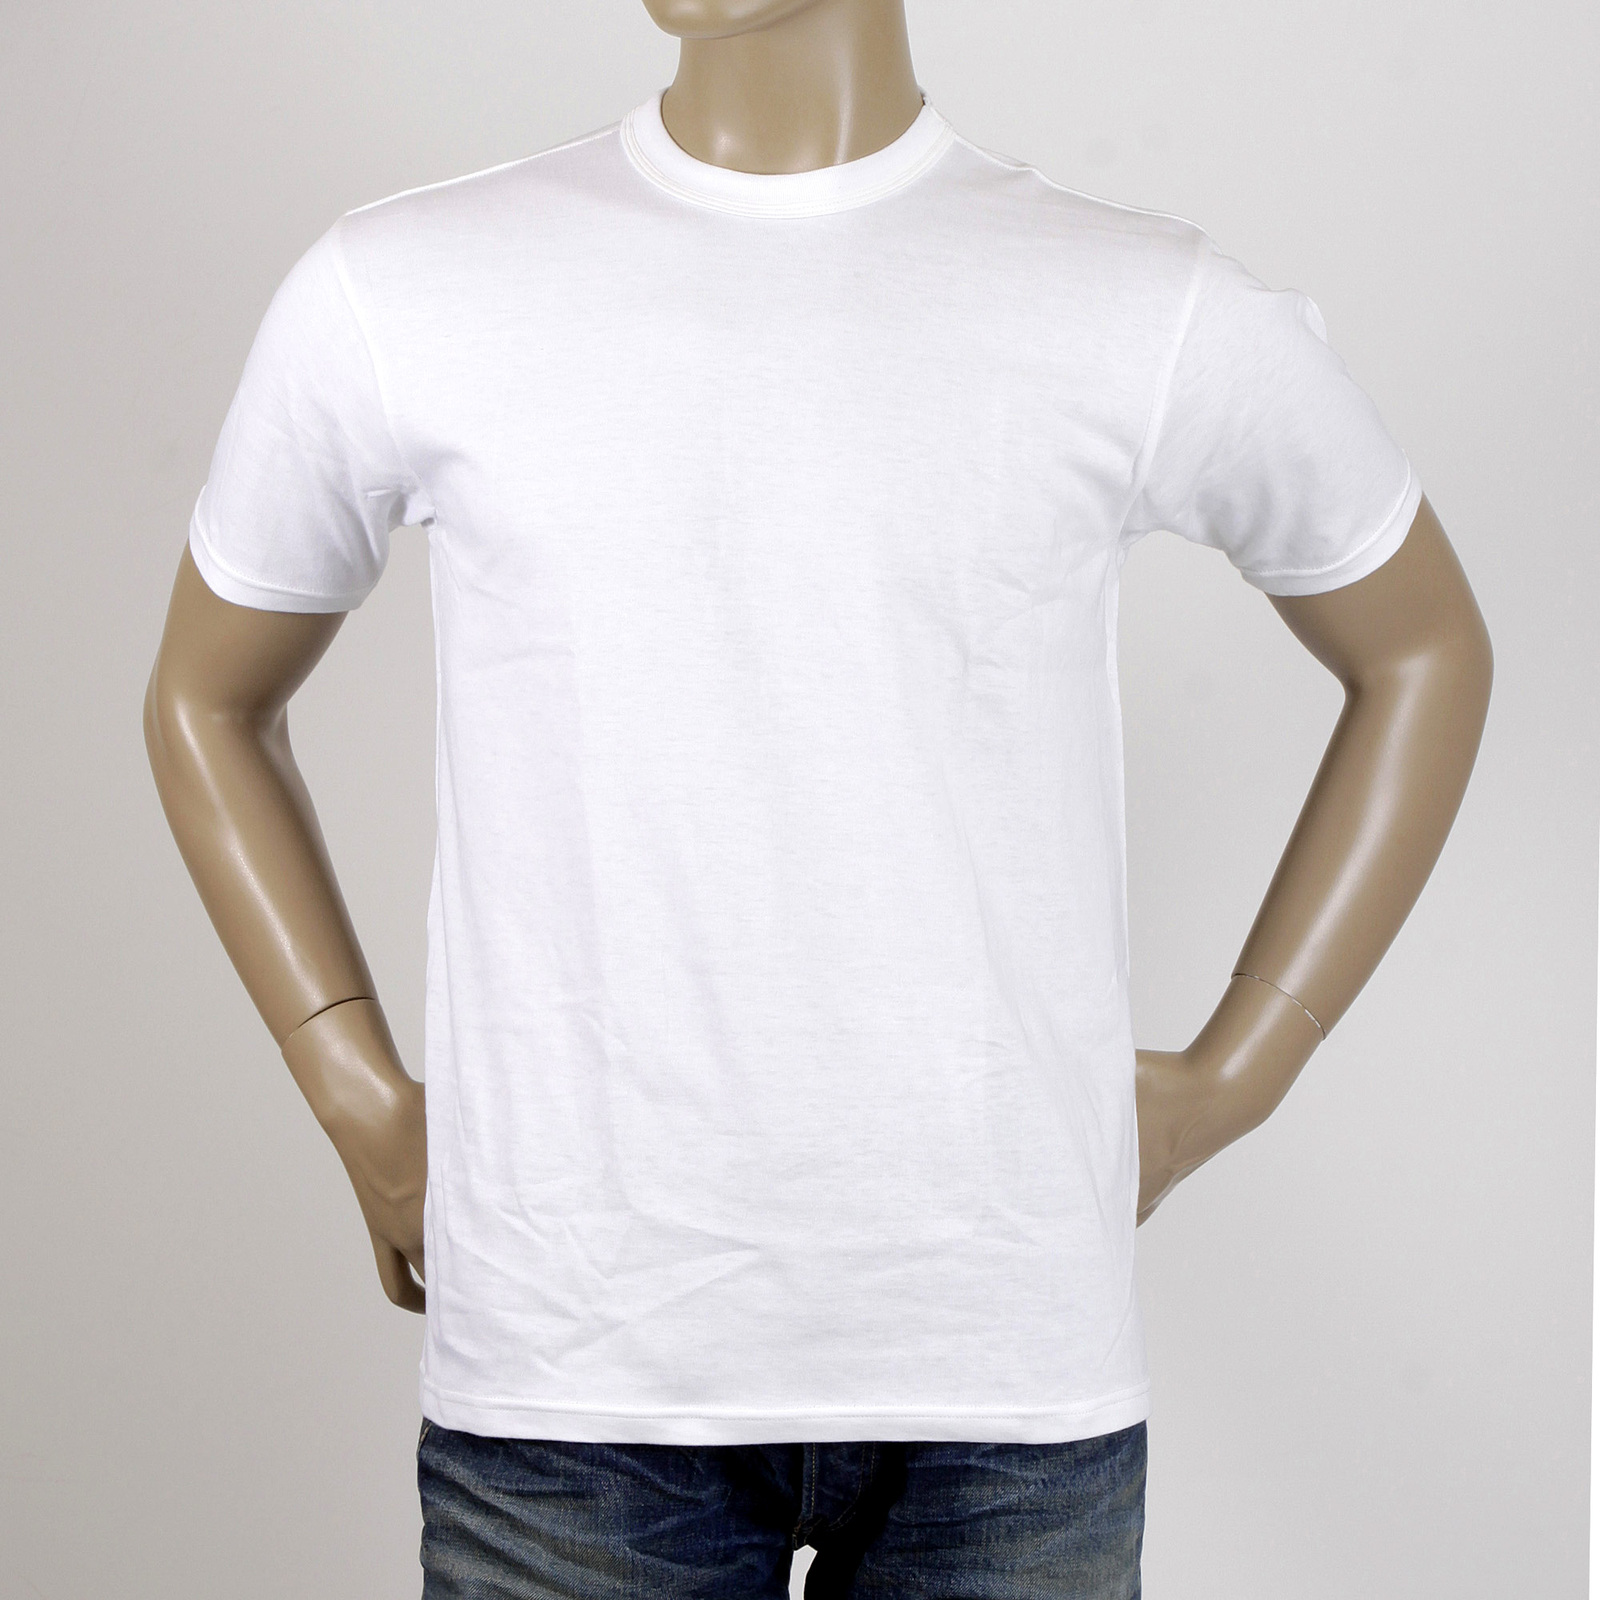 Stylish crew neck white cotton t shirt by whitesville for Crew neck white t shirt